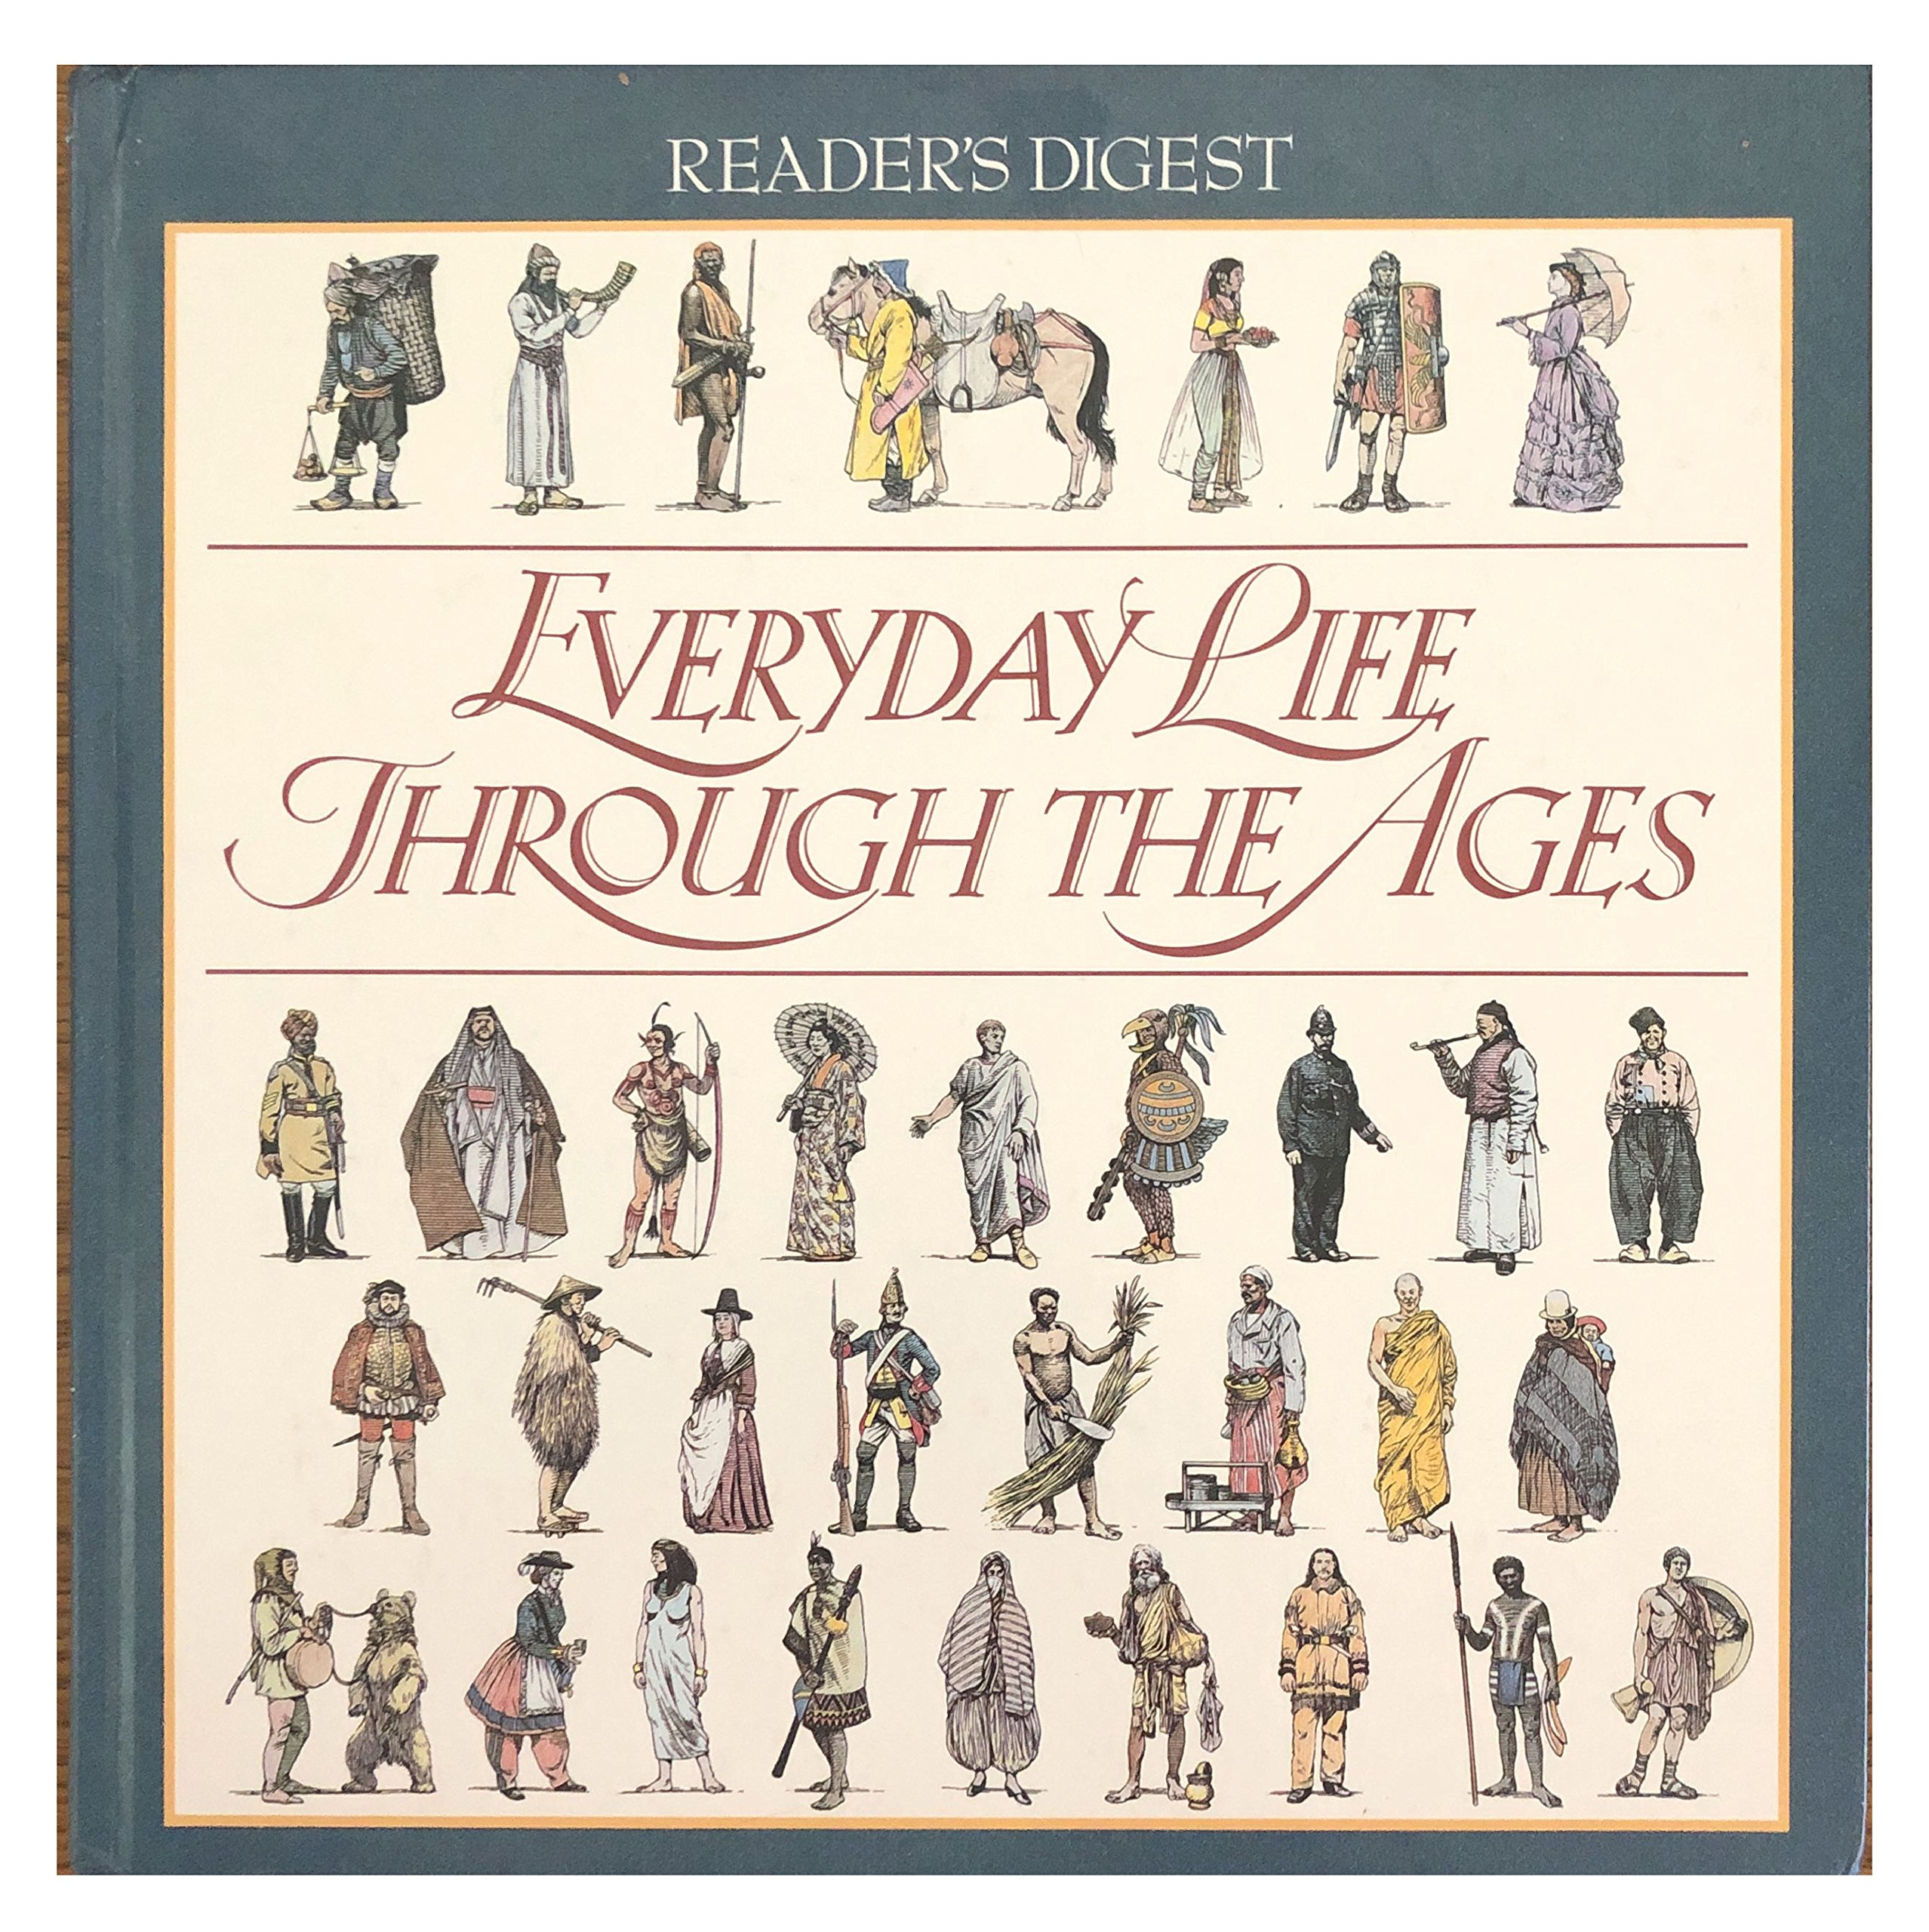 Buy Everyday life through the ages (Reader's Digest) Book Online at Low  Prices in India | Everyday life through the ages (Reader's Digest) Reviews  & Ratings ...